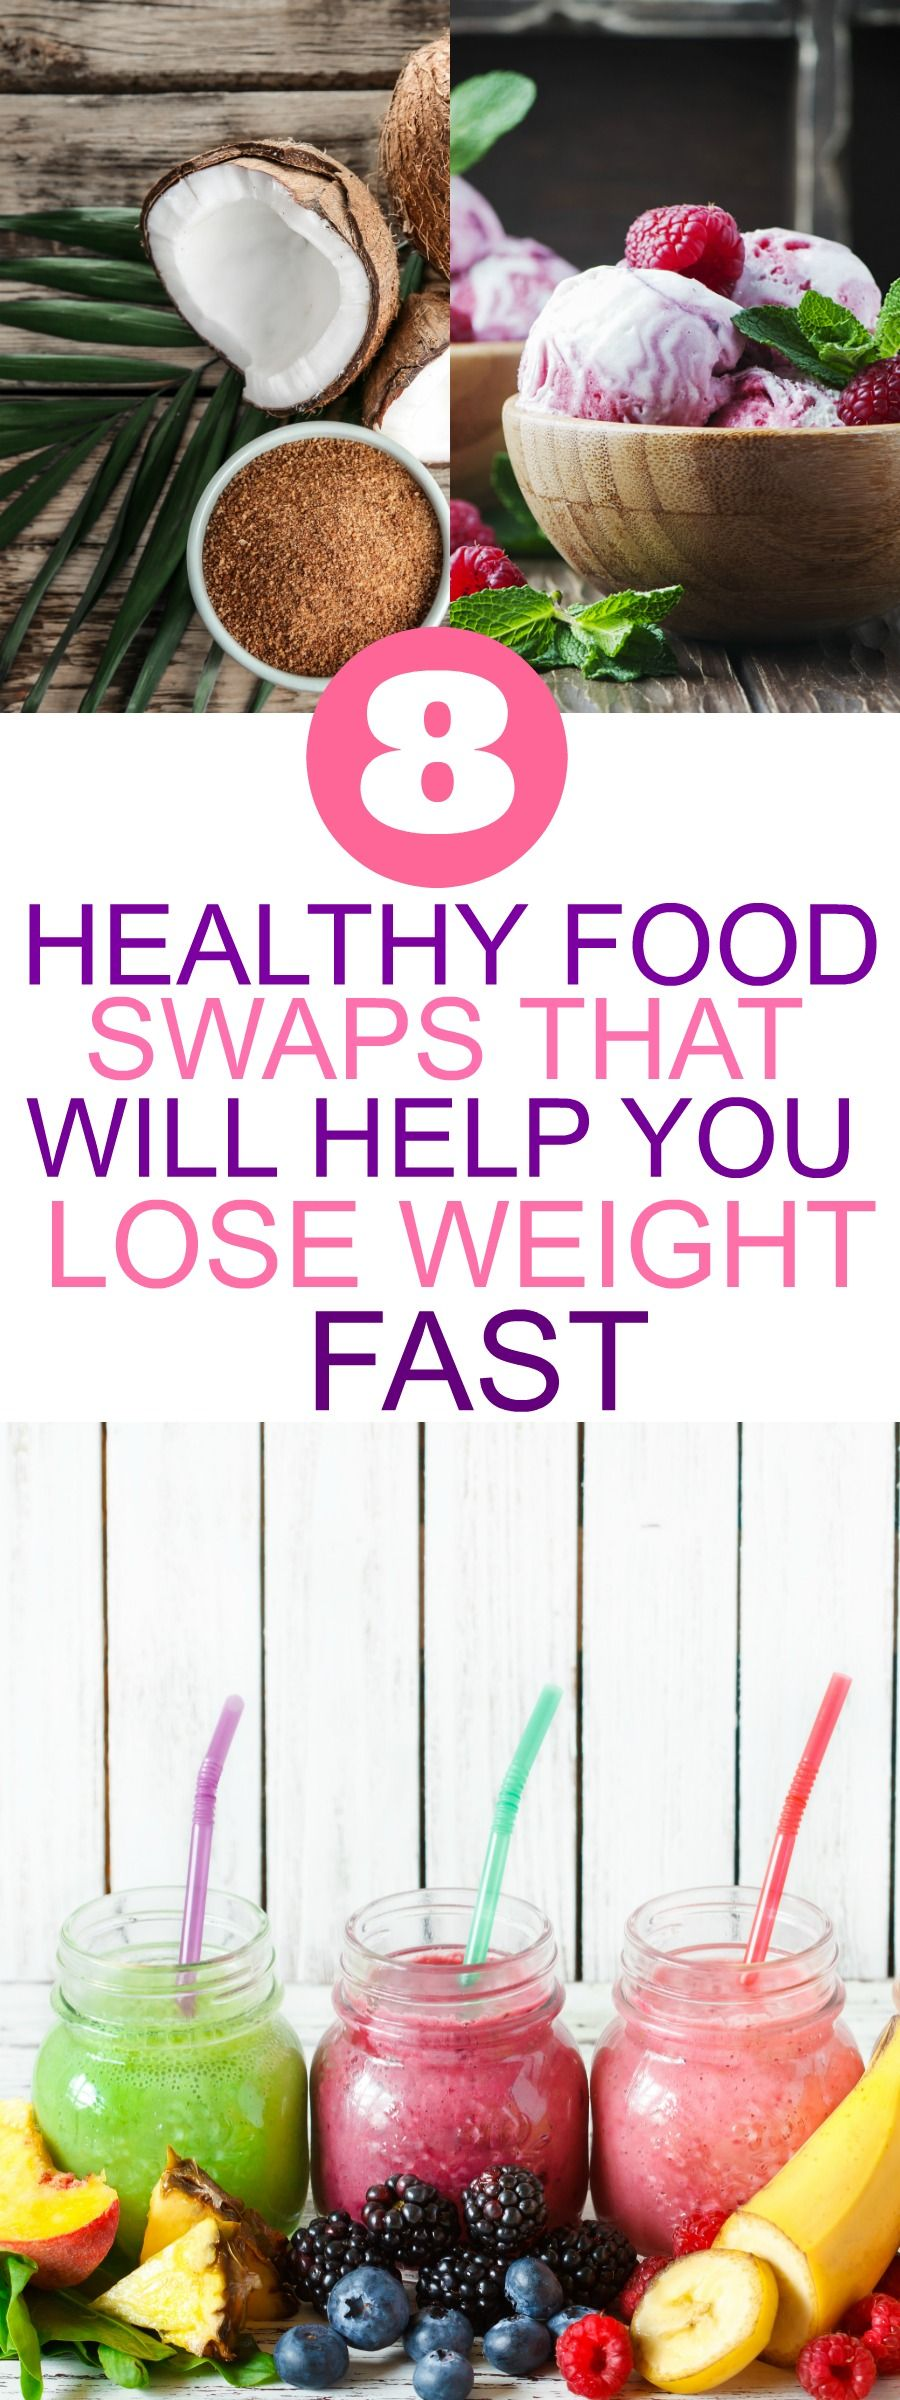 Can you lose weight eating weight watchers food